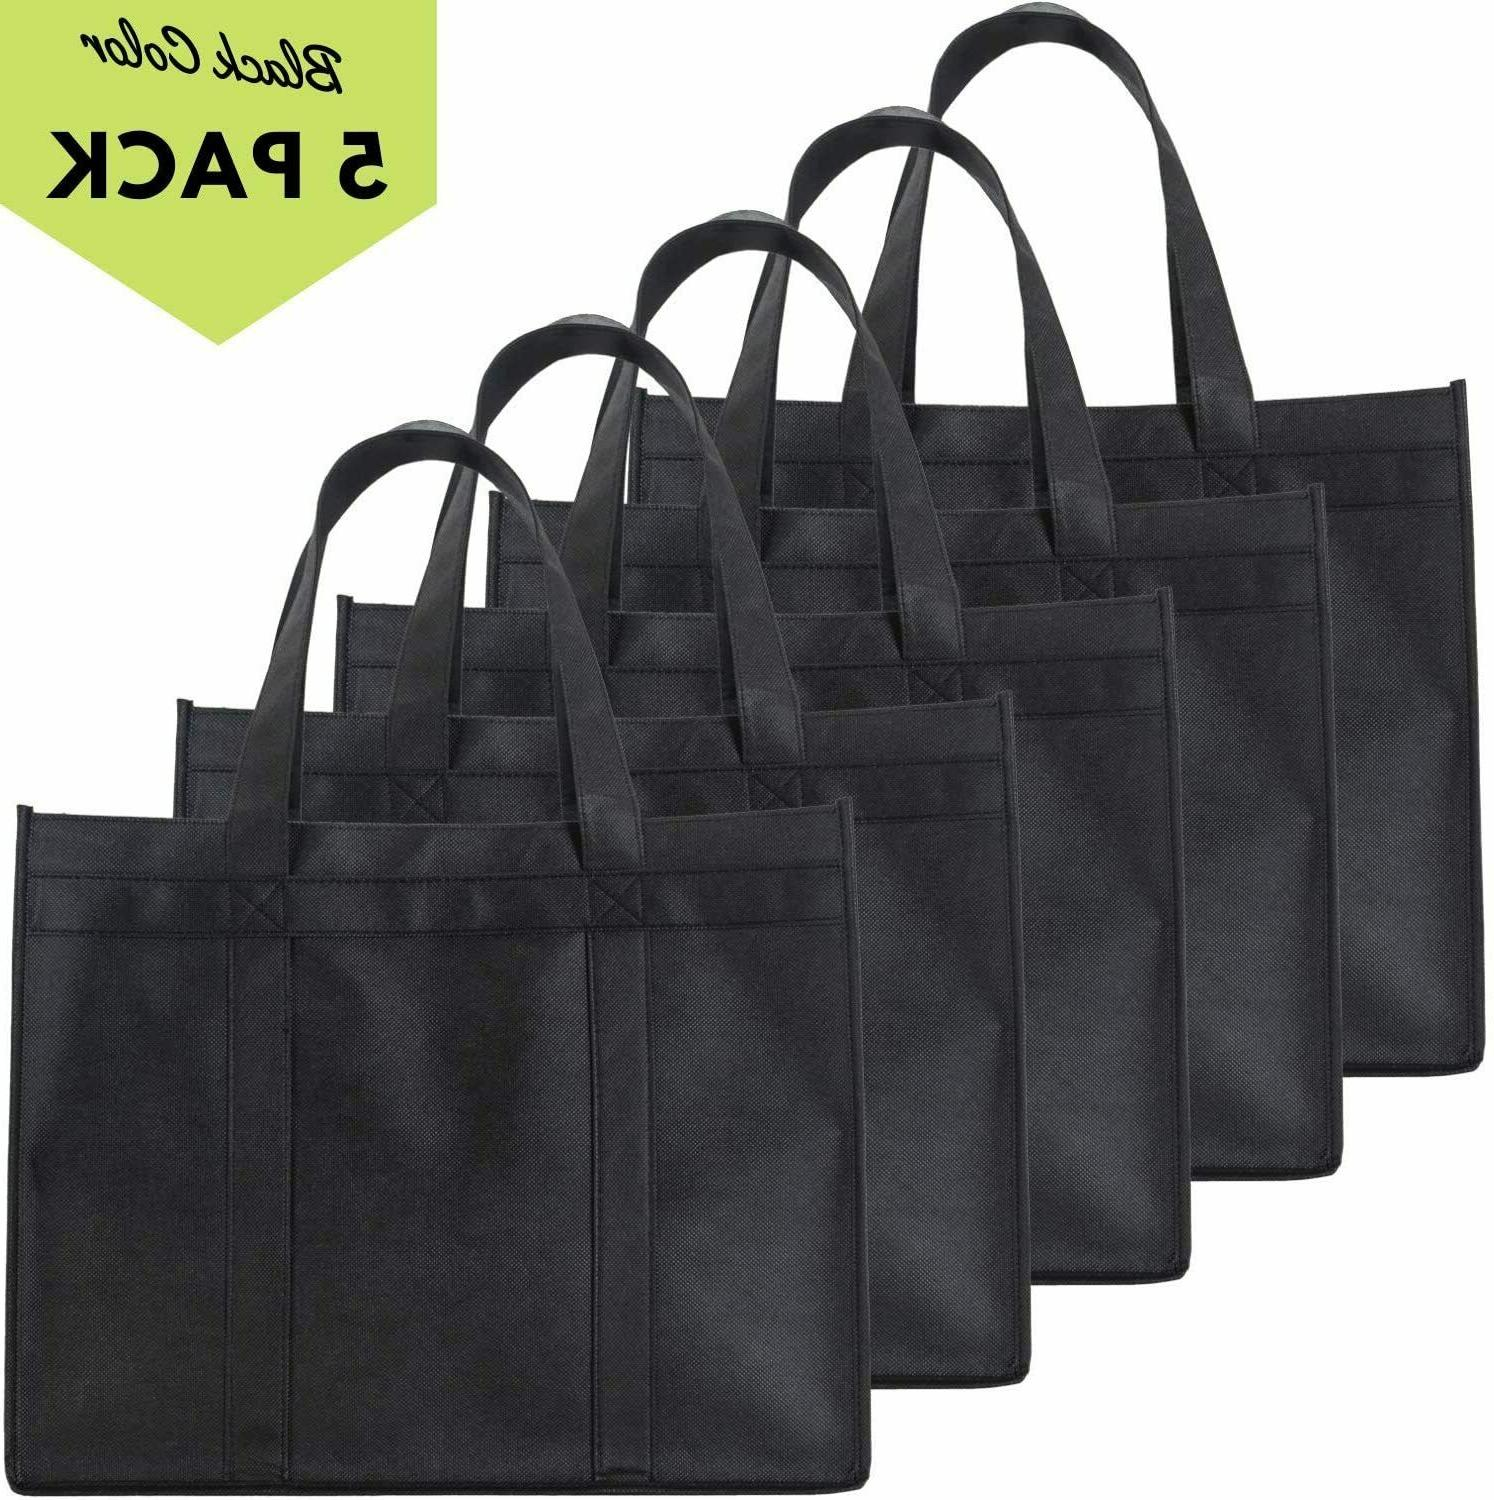 5 Reusable Grocery Bags,Heavy Shopping Tote,Foldable,Washable